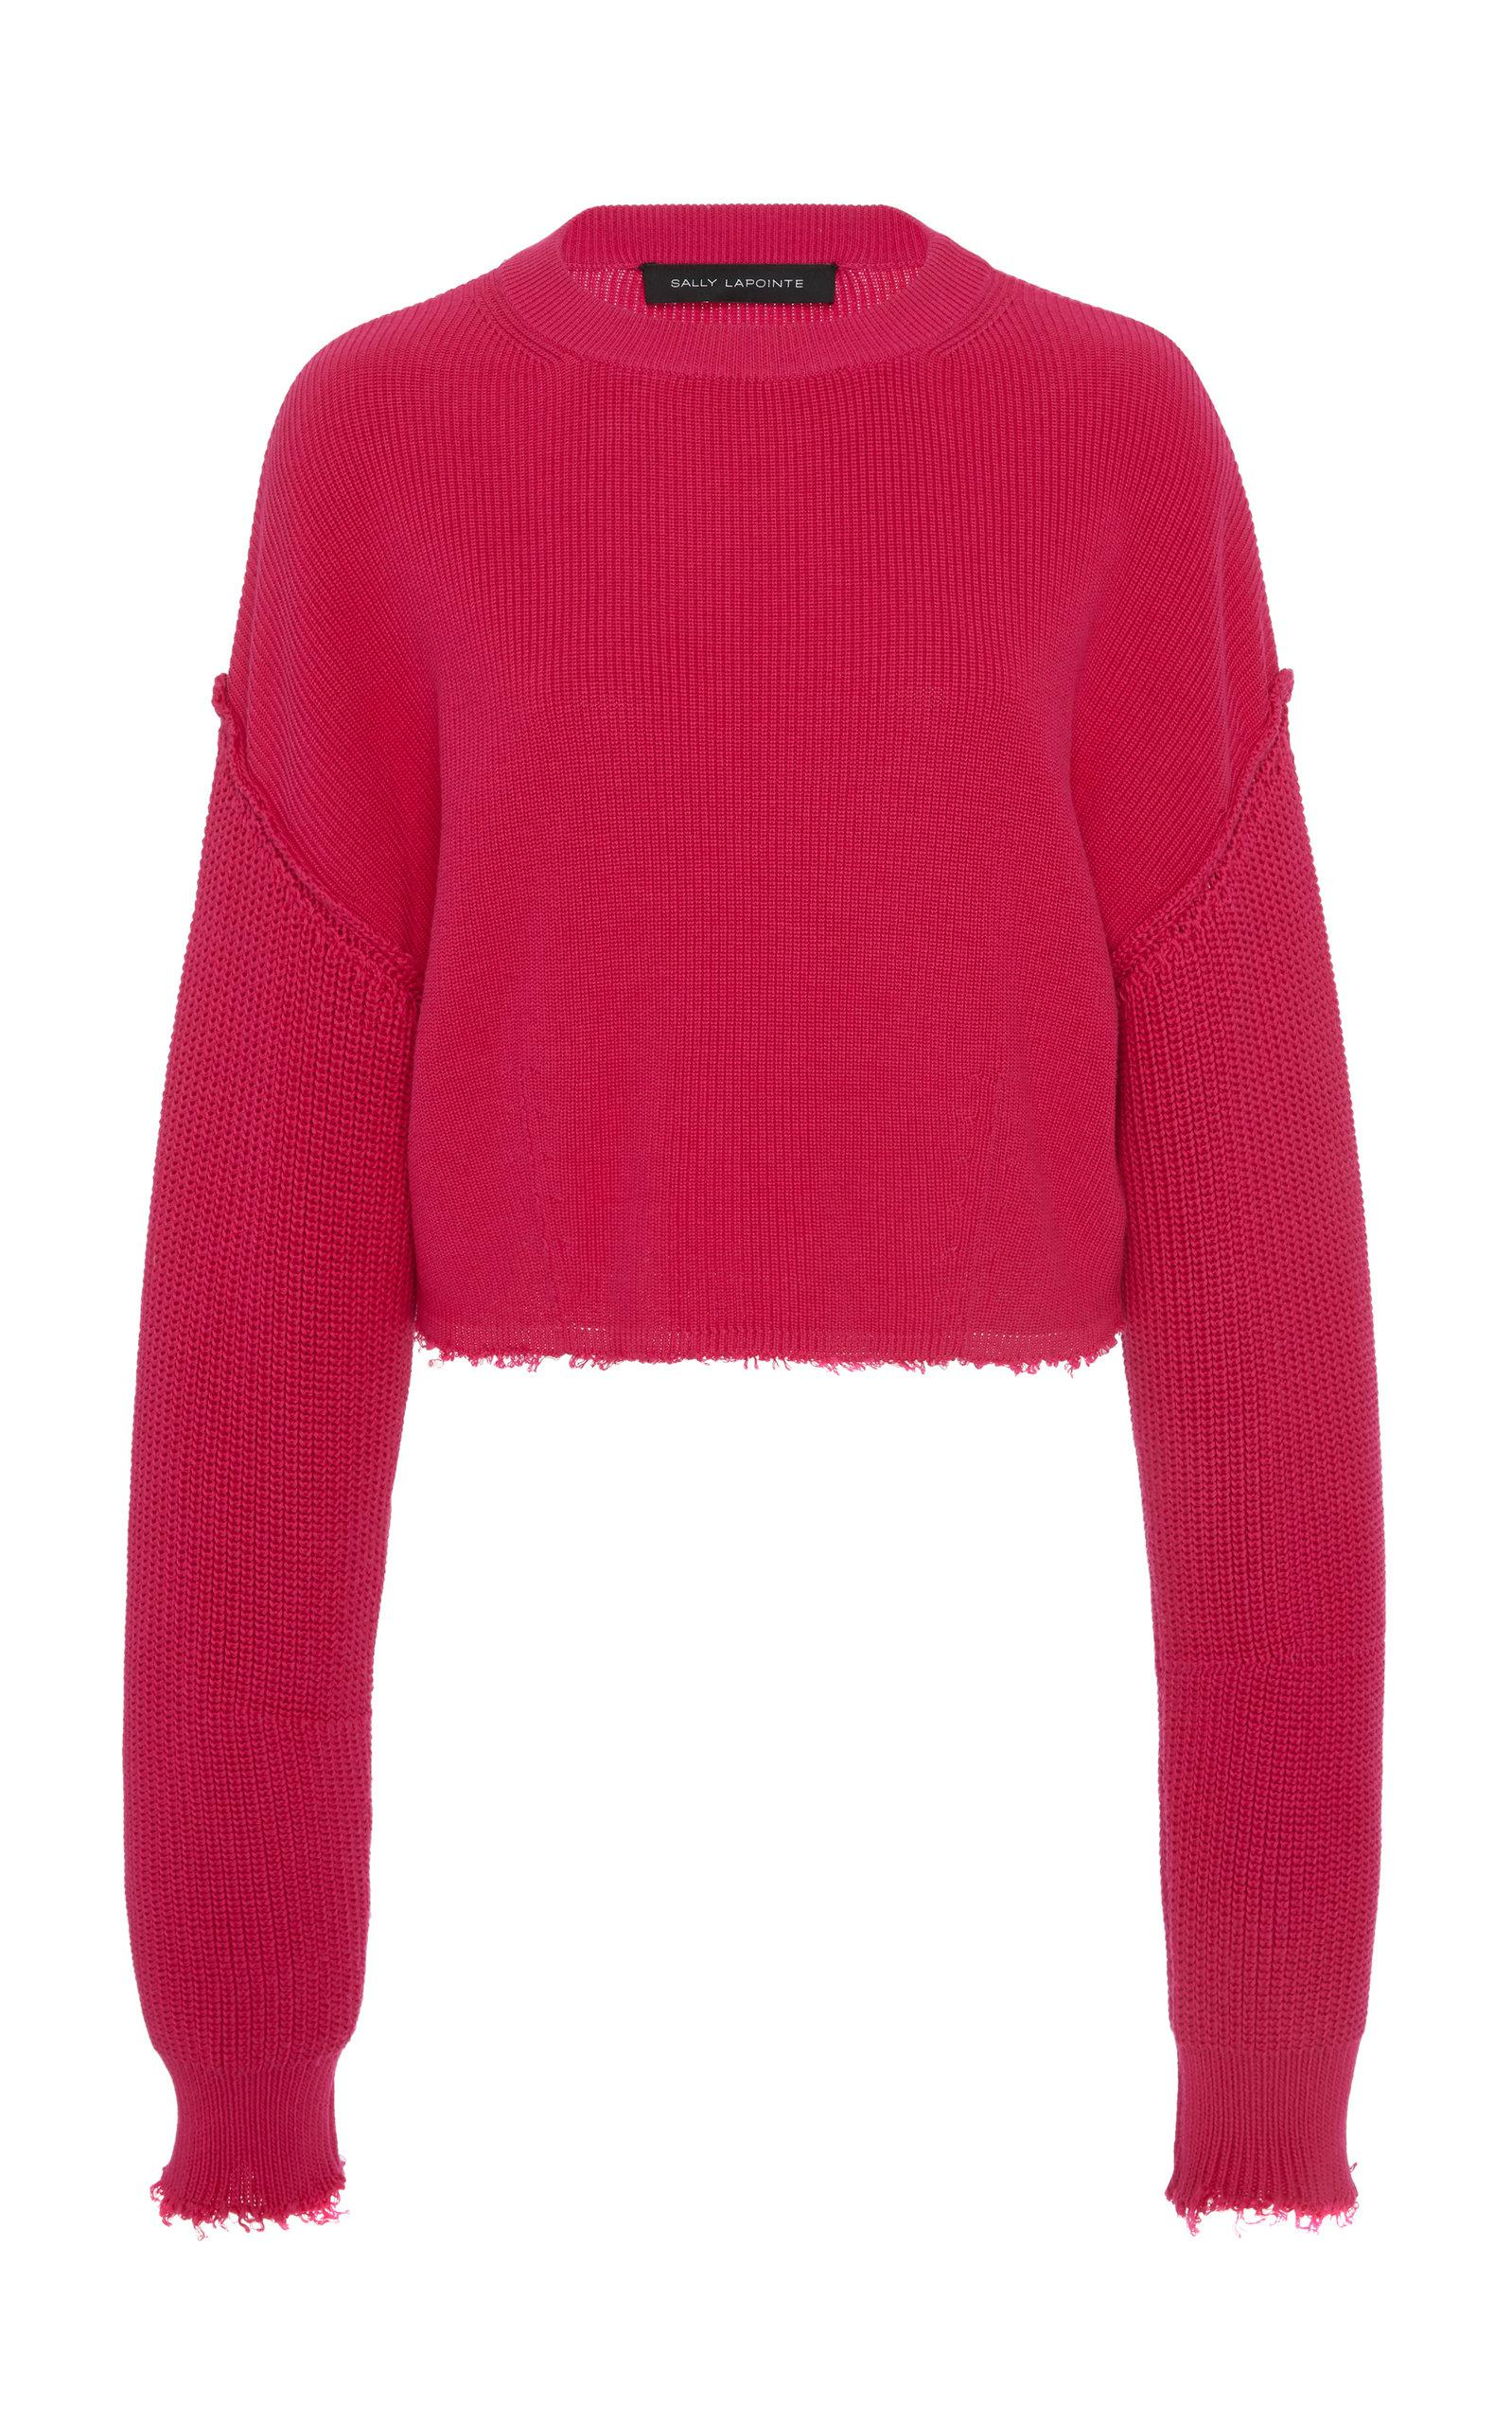 bf4855145f0 Sally Lapointe Pink Airy Silk And Cashmere Cable-knit Cropped Sweater